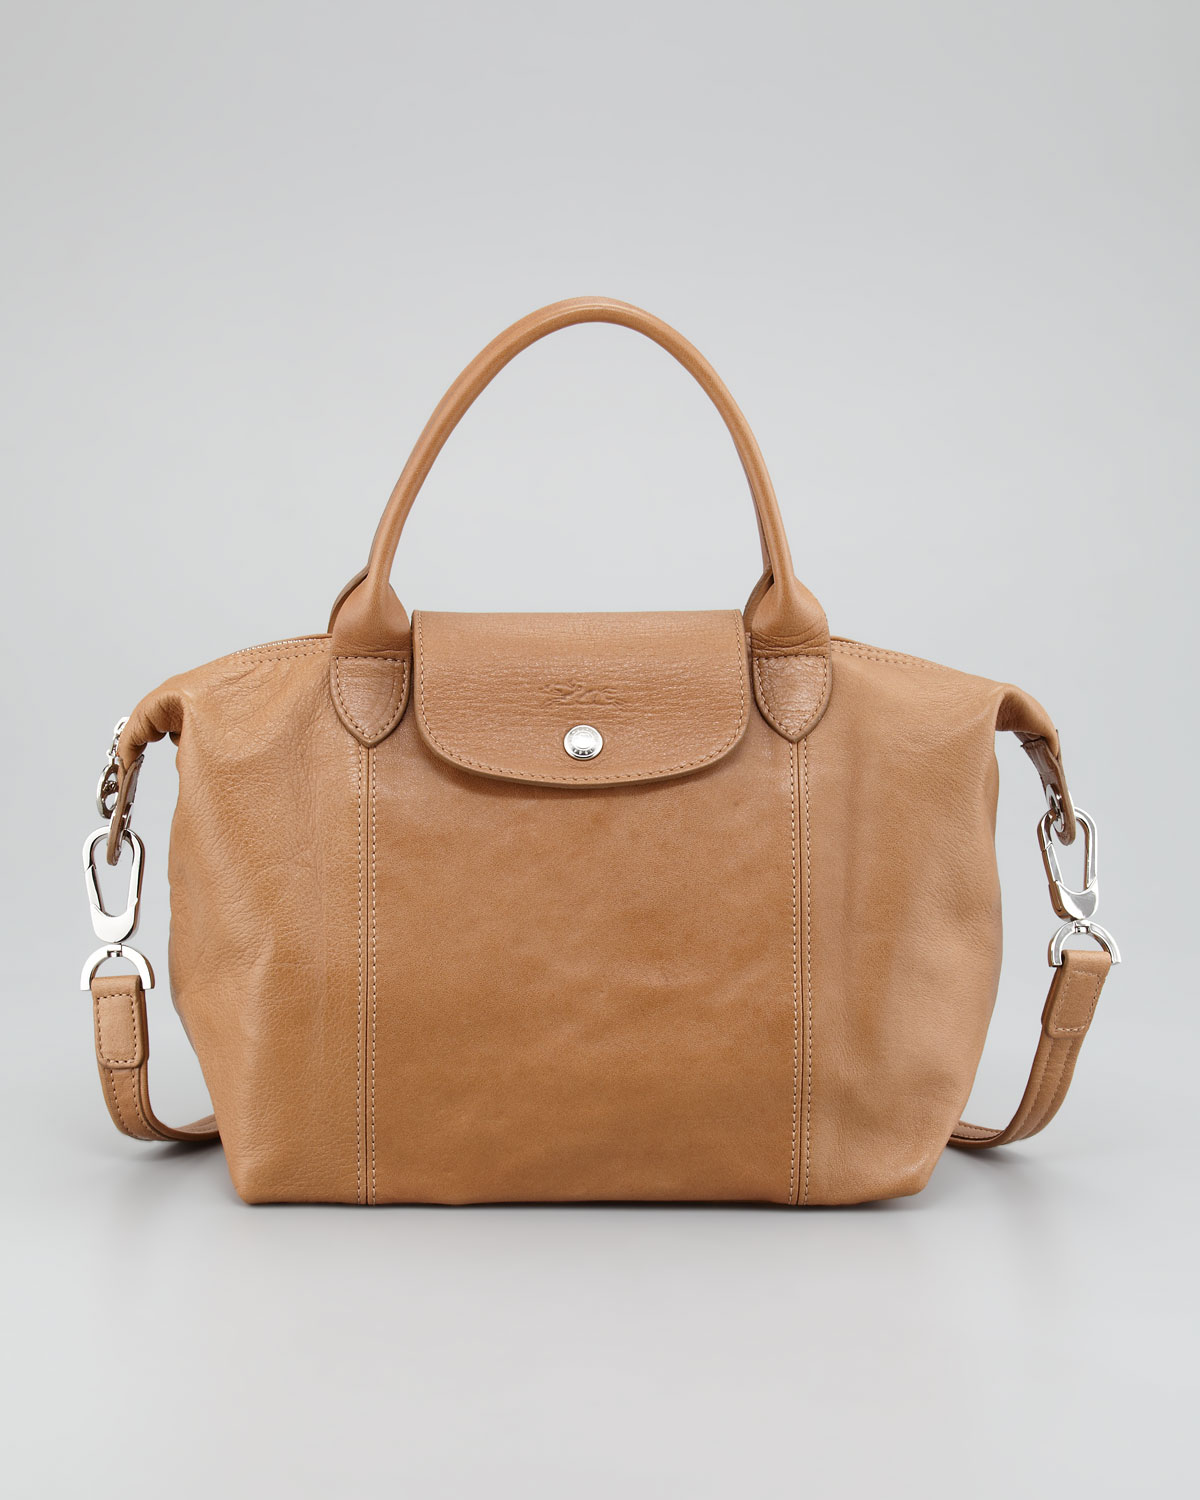 5fcdefe96e84 Lyst - Longchamp Small Leather Tote Bag in Brown